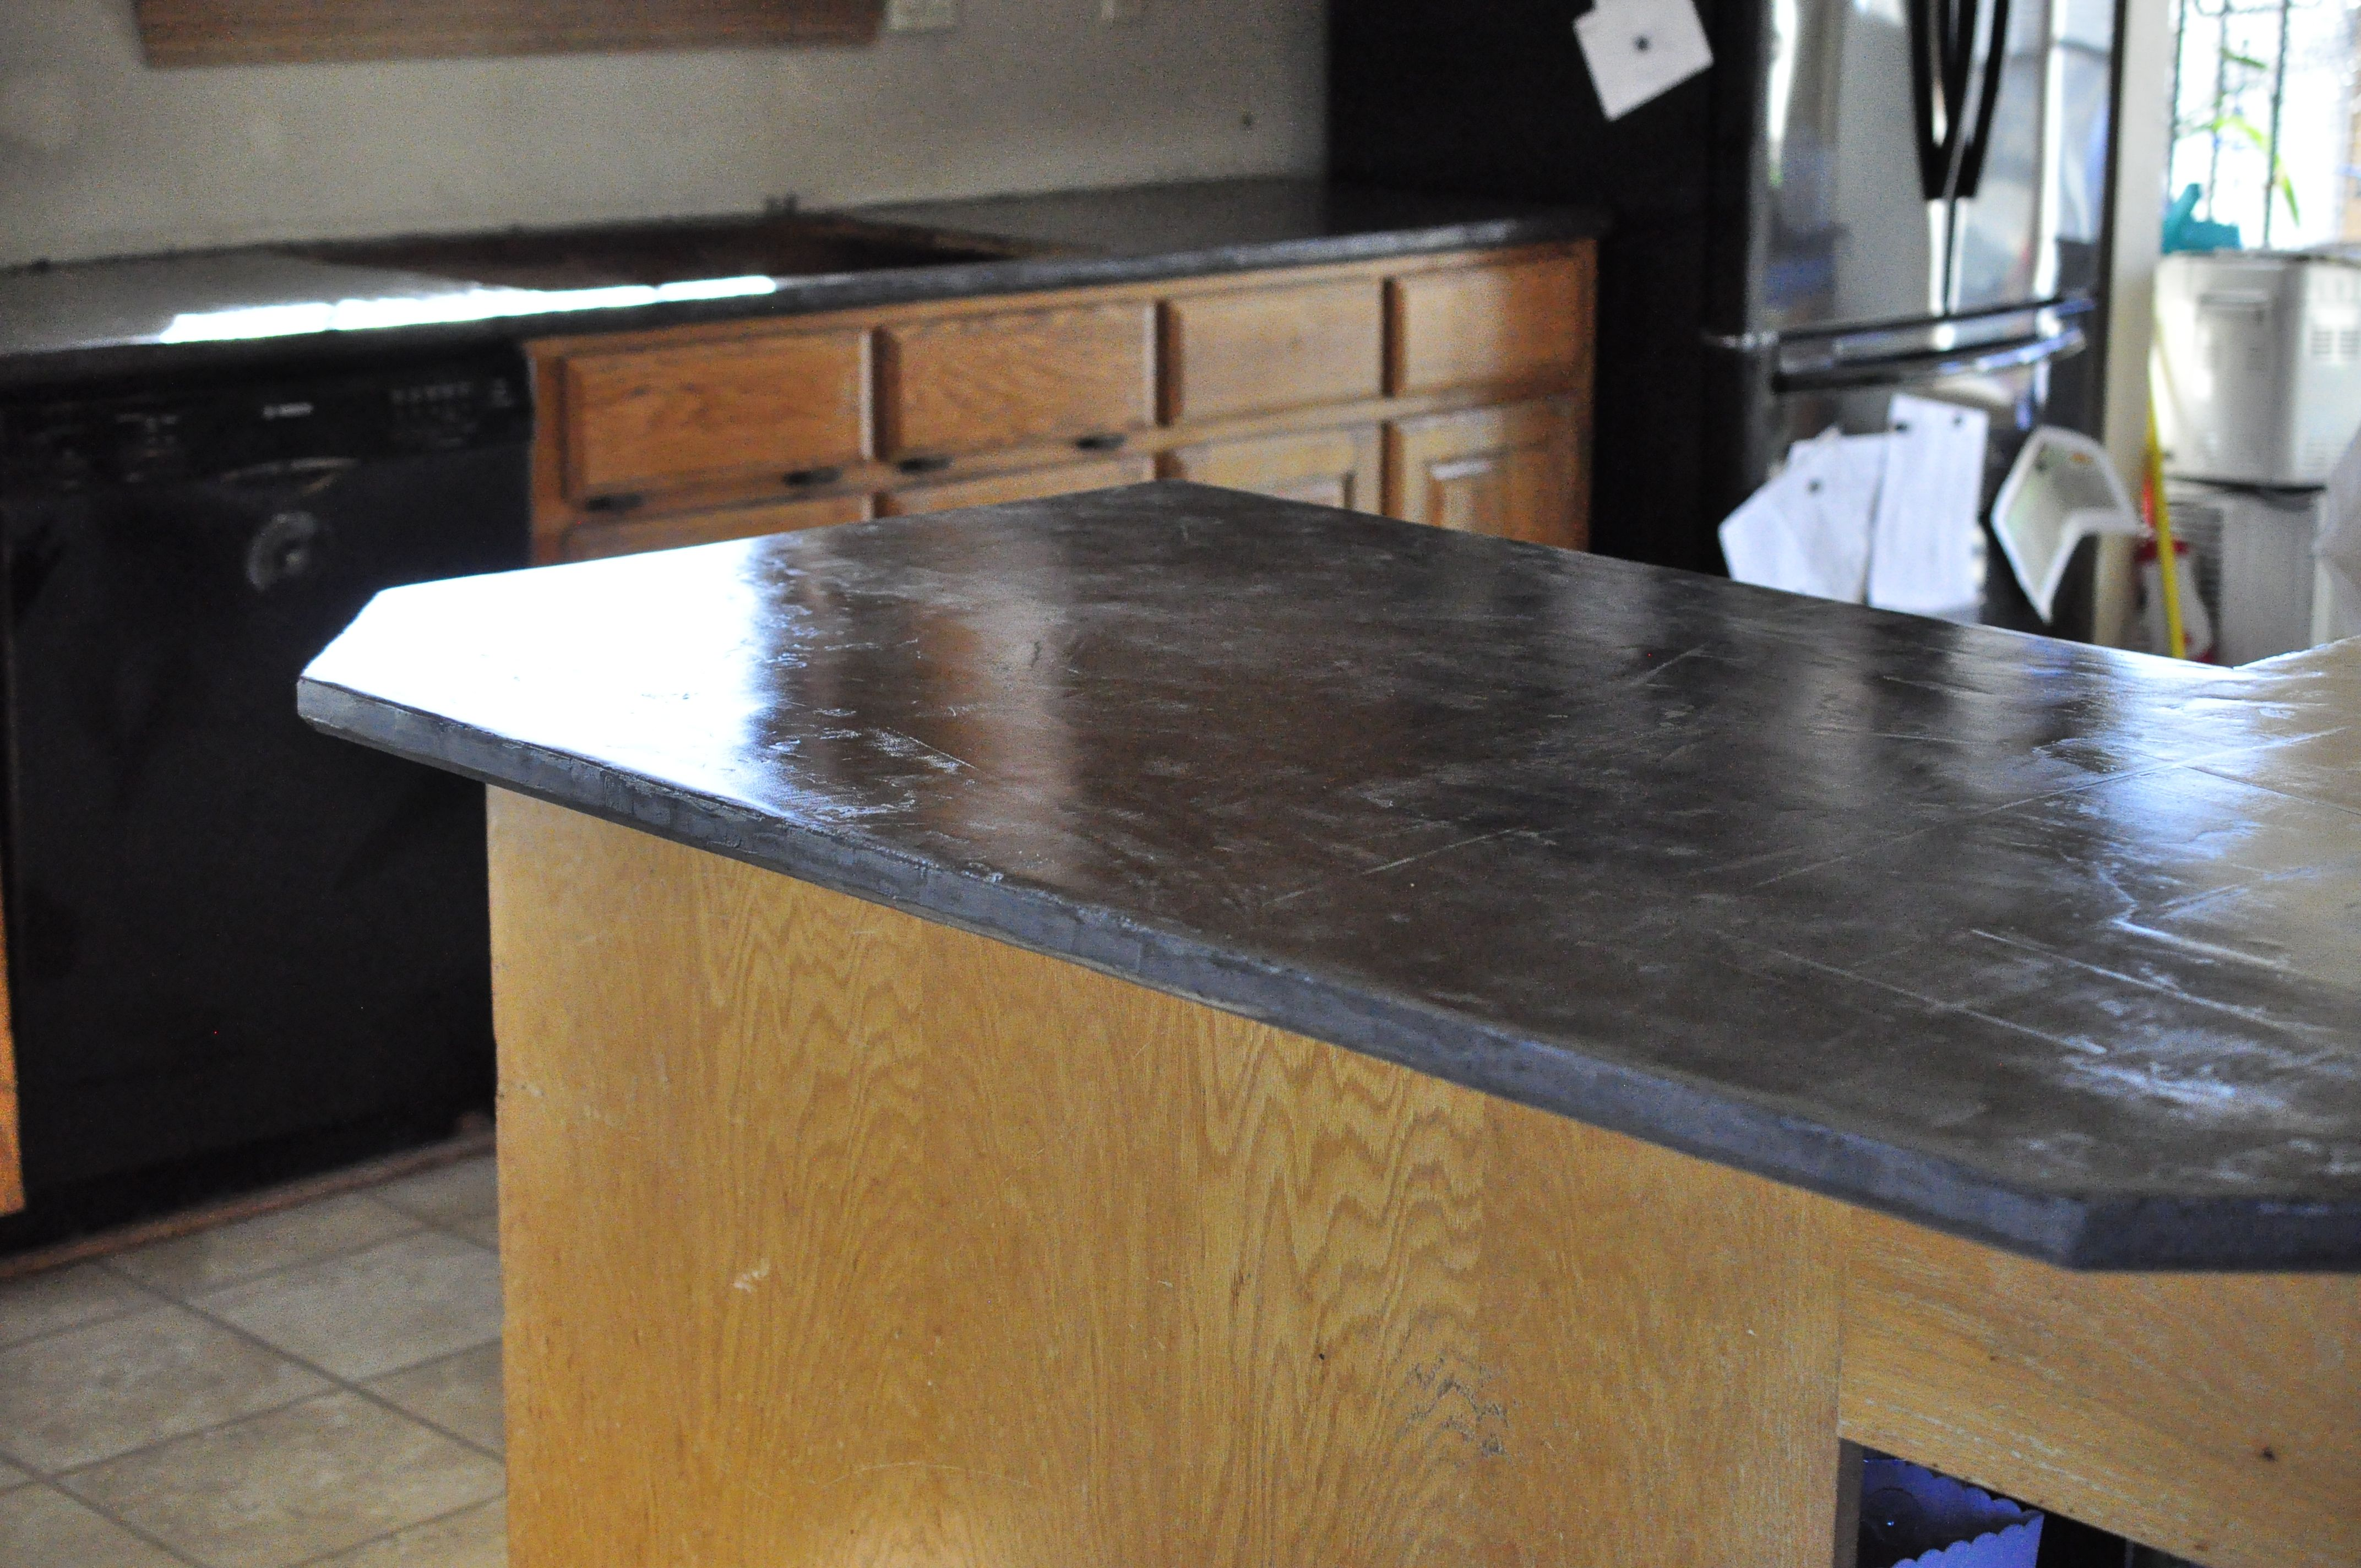 How Much For Concrete Countertops Faux Concrete Countertops Super Easy I Used Henry